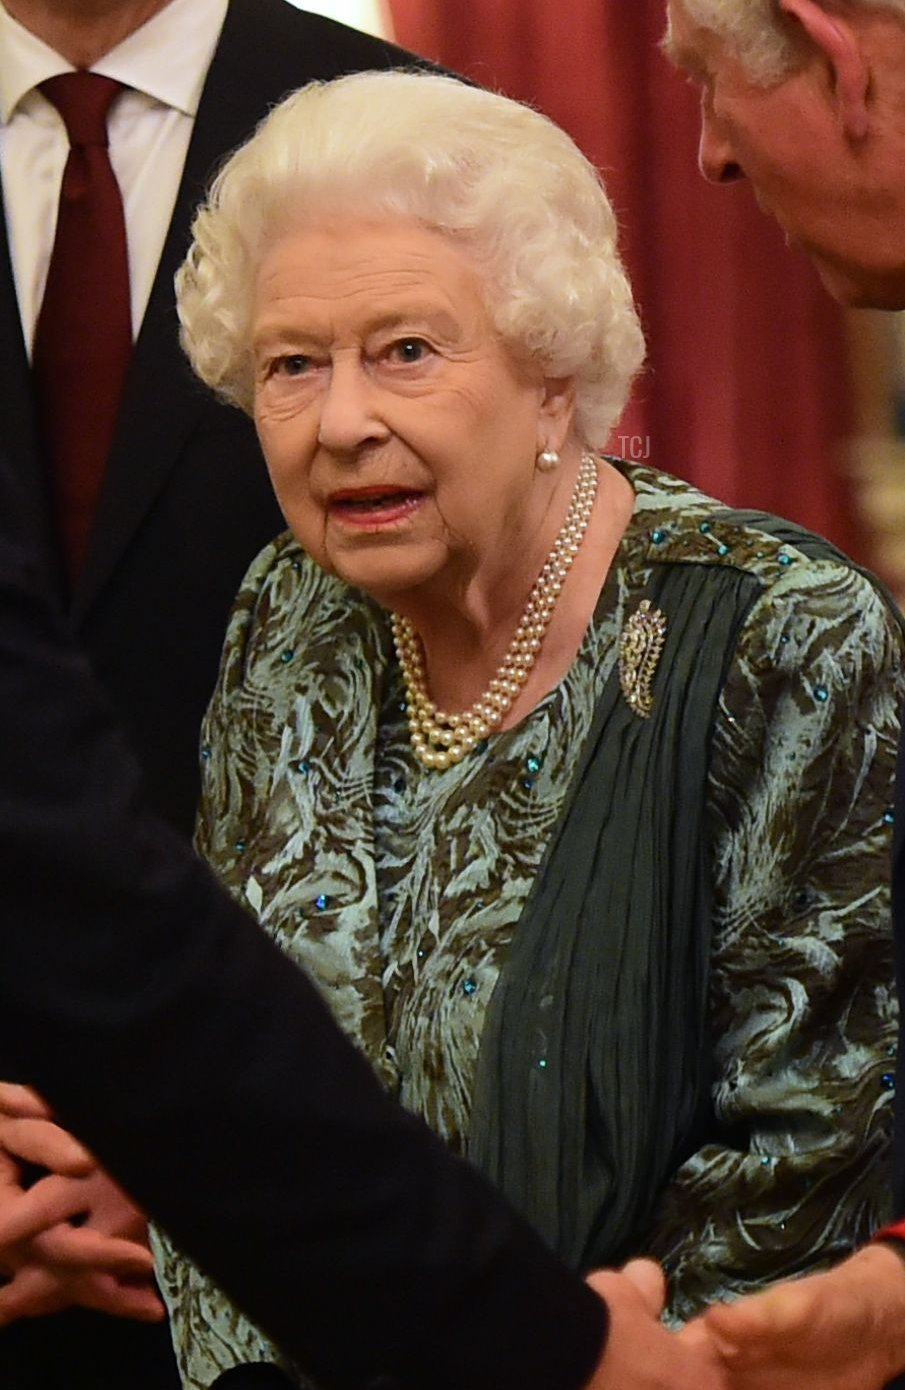 Britain's Queen Elizabeth II (C) speaks with US First Lady Melania Trump (L) and US President Donald Trump (2nd L), Britain's Camilla, Duchess of Cornwall (R) and Britain's Prince Charles, Prince of Wales (2nd R) in Buckingham Palace in central London on December 3, 2019, during a reception hosted by Britain's Queen Elizabeth II ahead of the NATO alliance summit